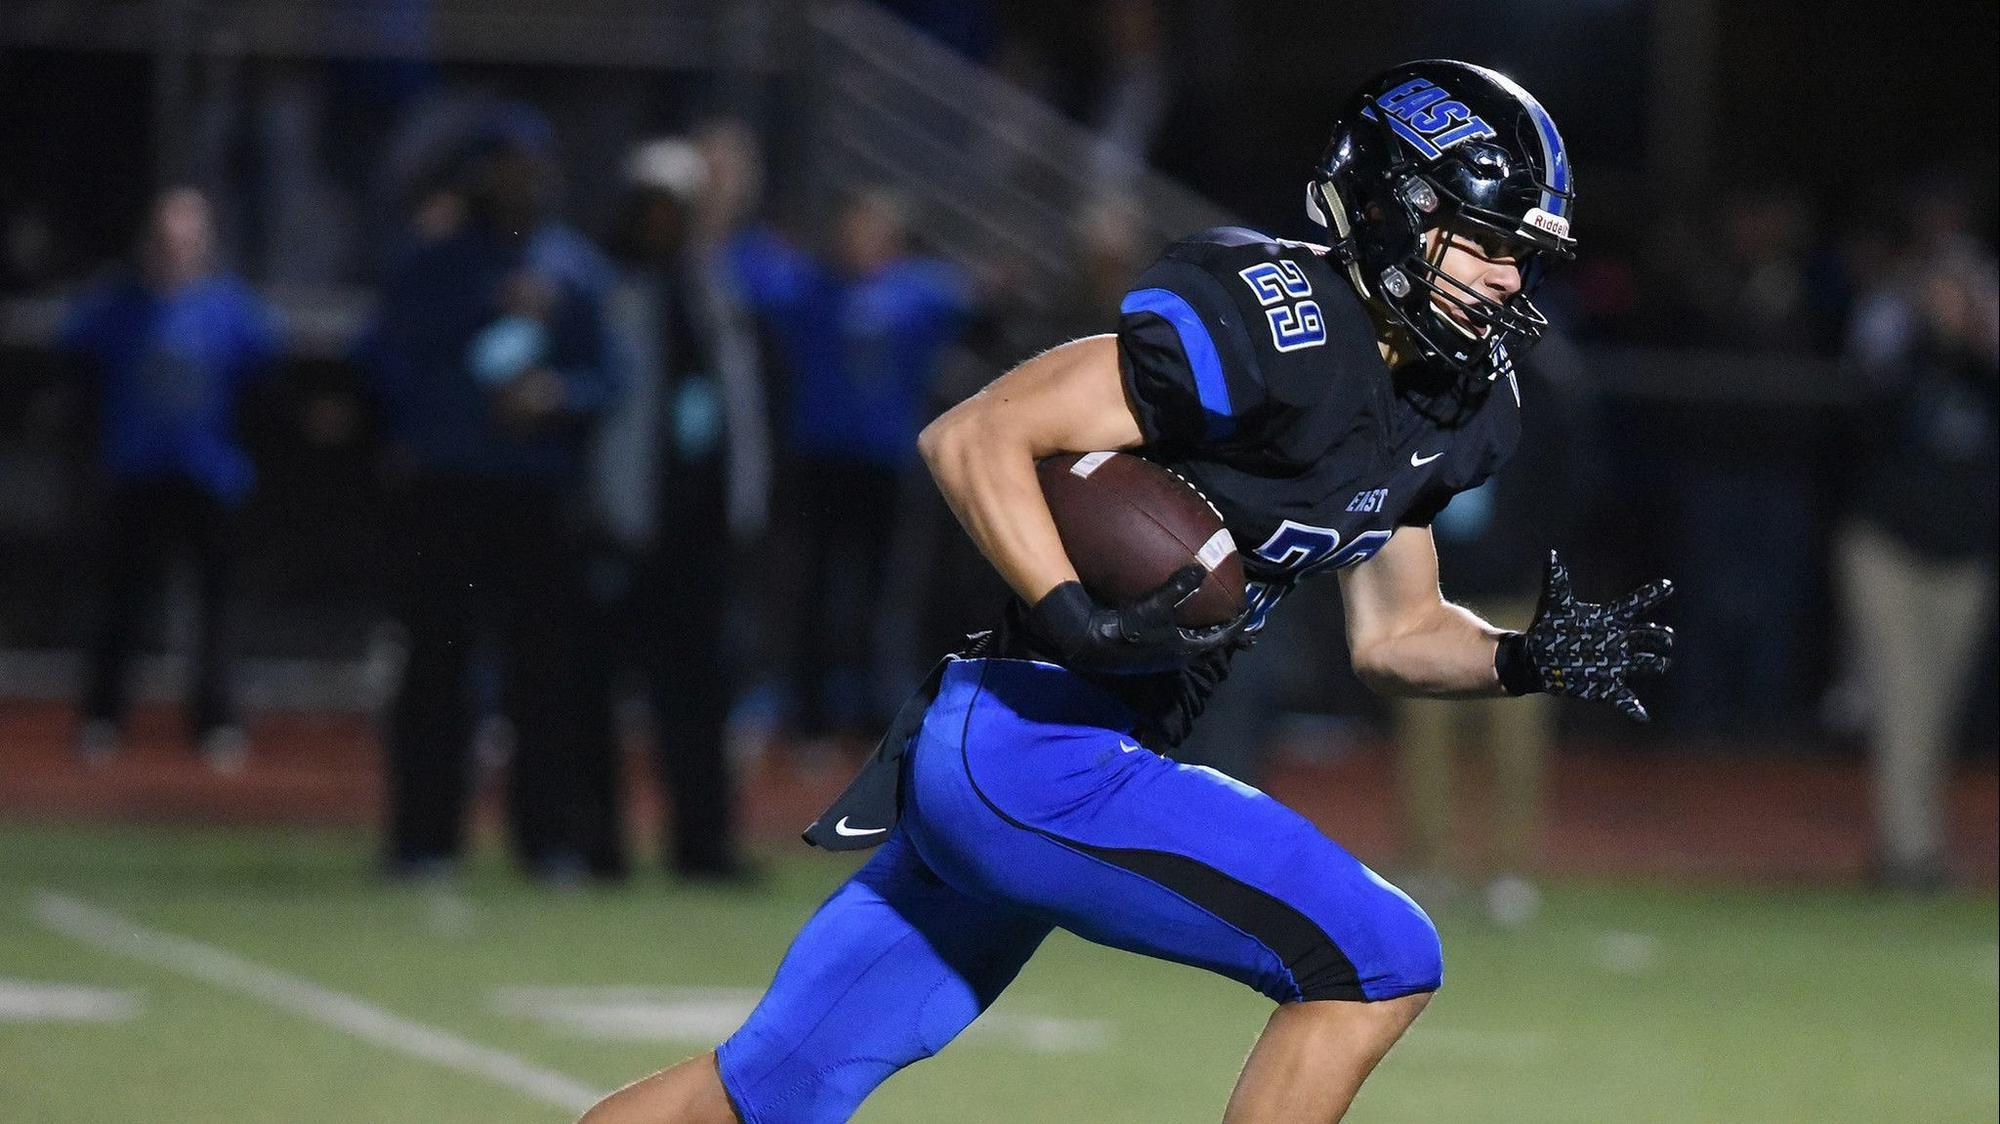 Righteous Ritter Senior Receiver Jackson Ritter Snags 3 Tds As